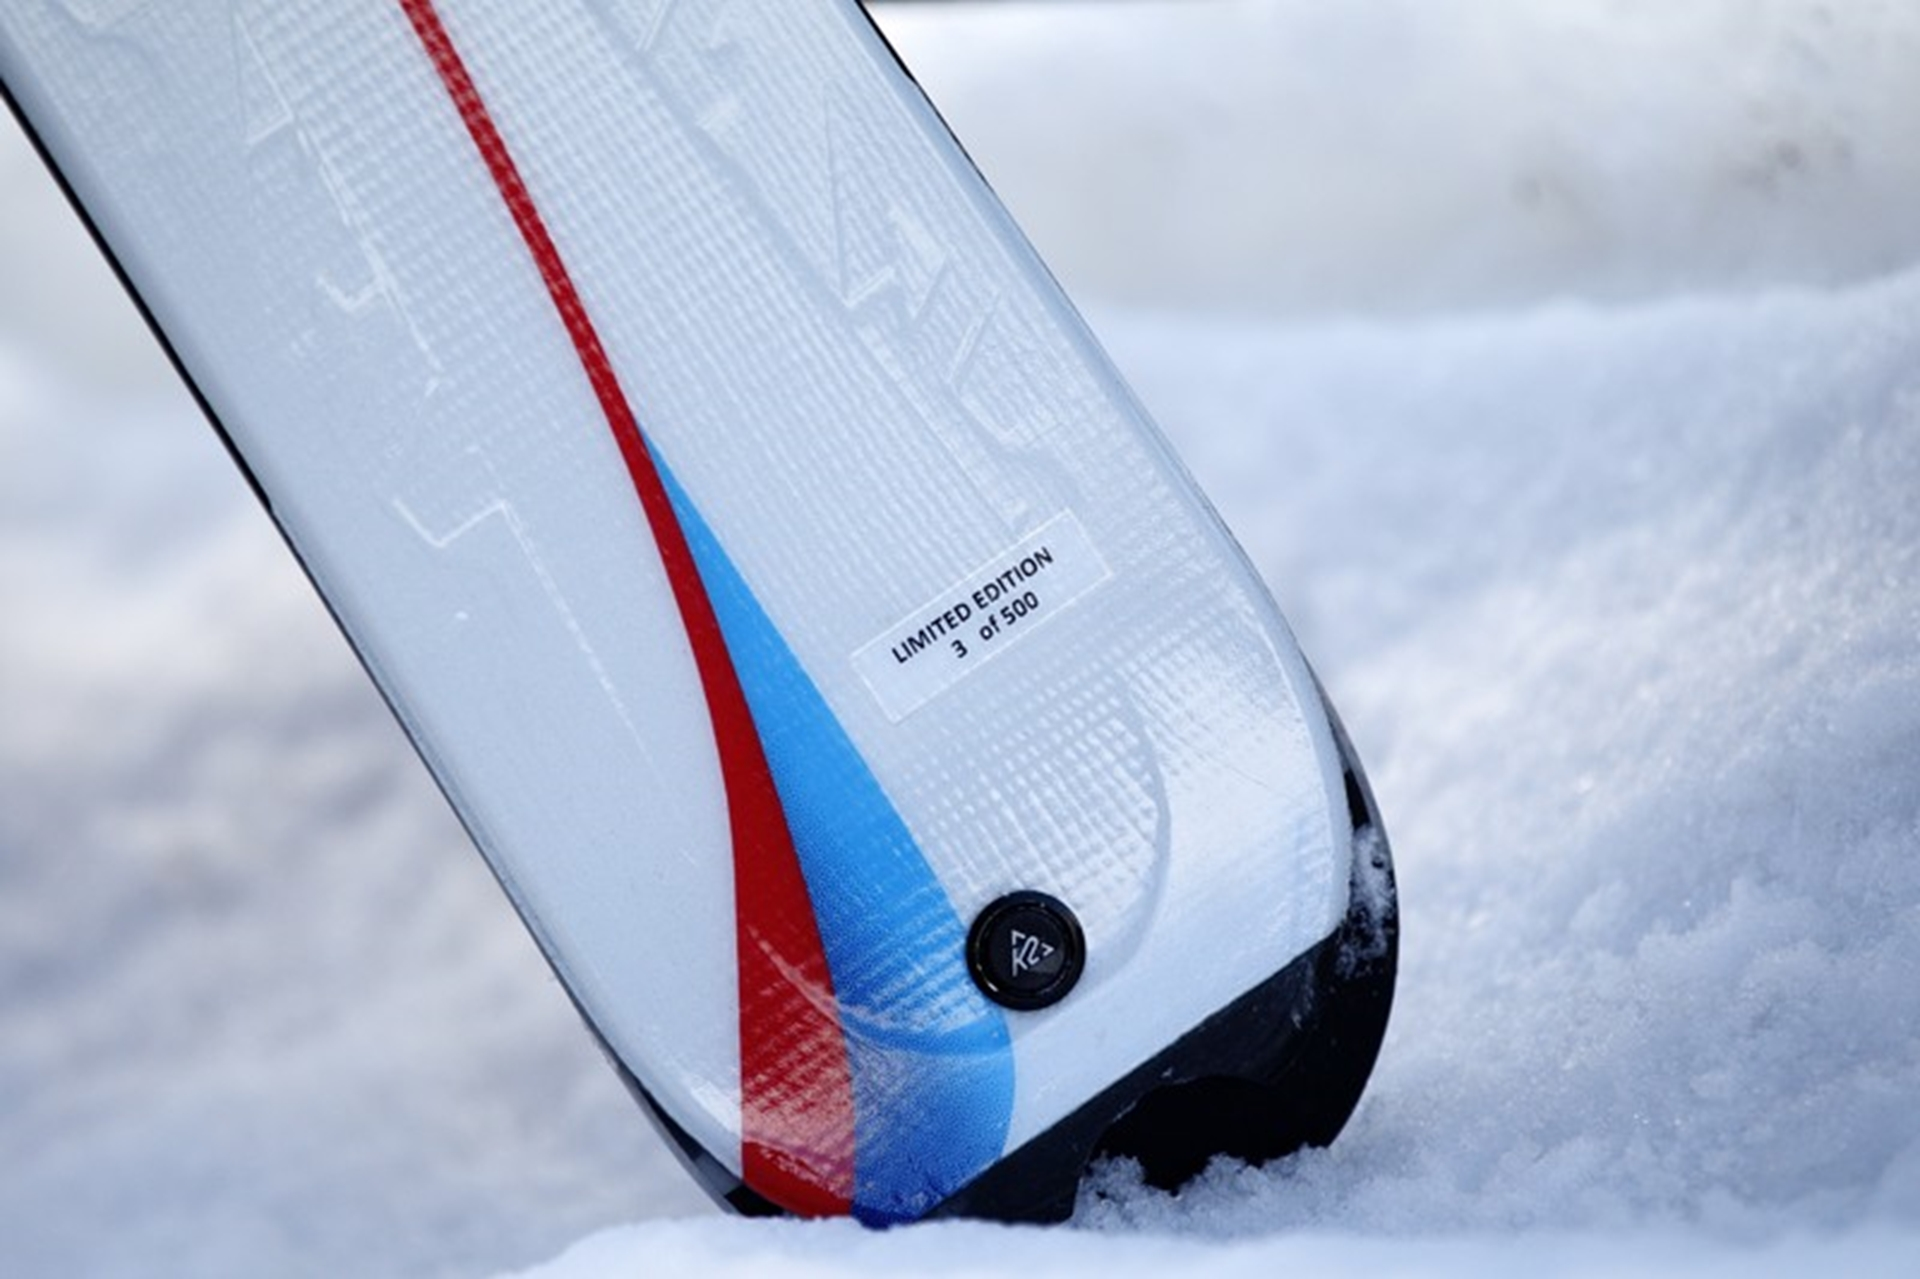 K2 LTD BMW M Design Ski